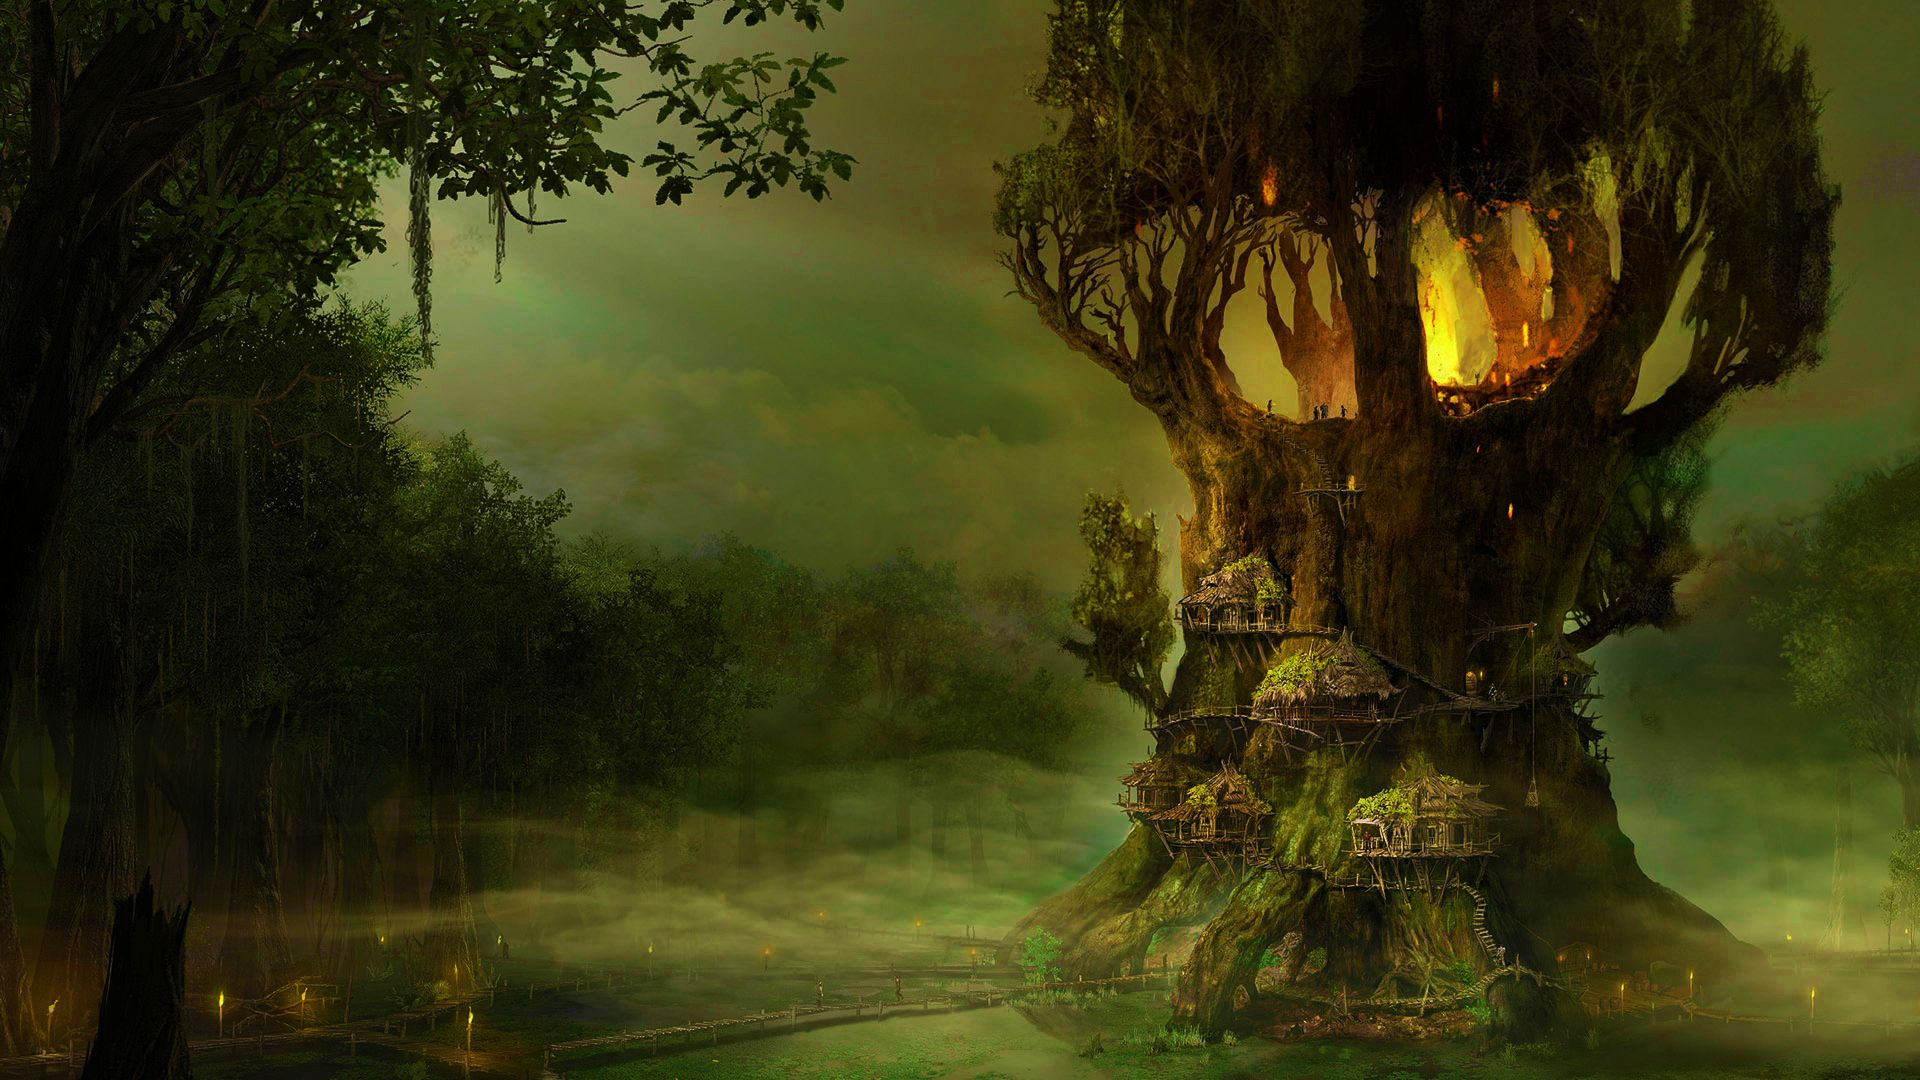 Elf pictures and images elves tree village wallpaper for Quality wallpaper for home